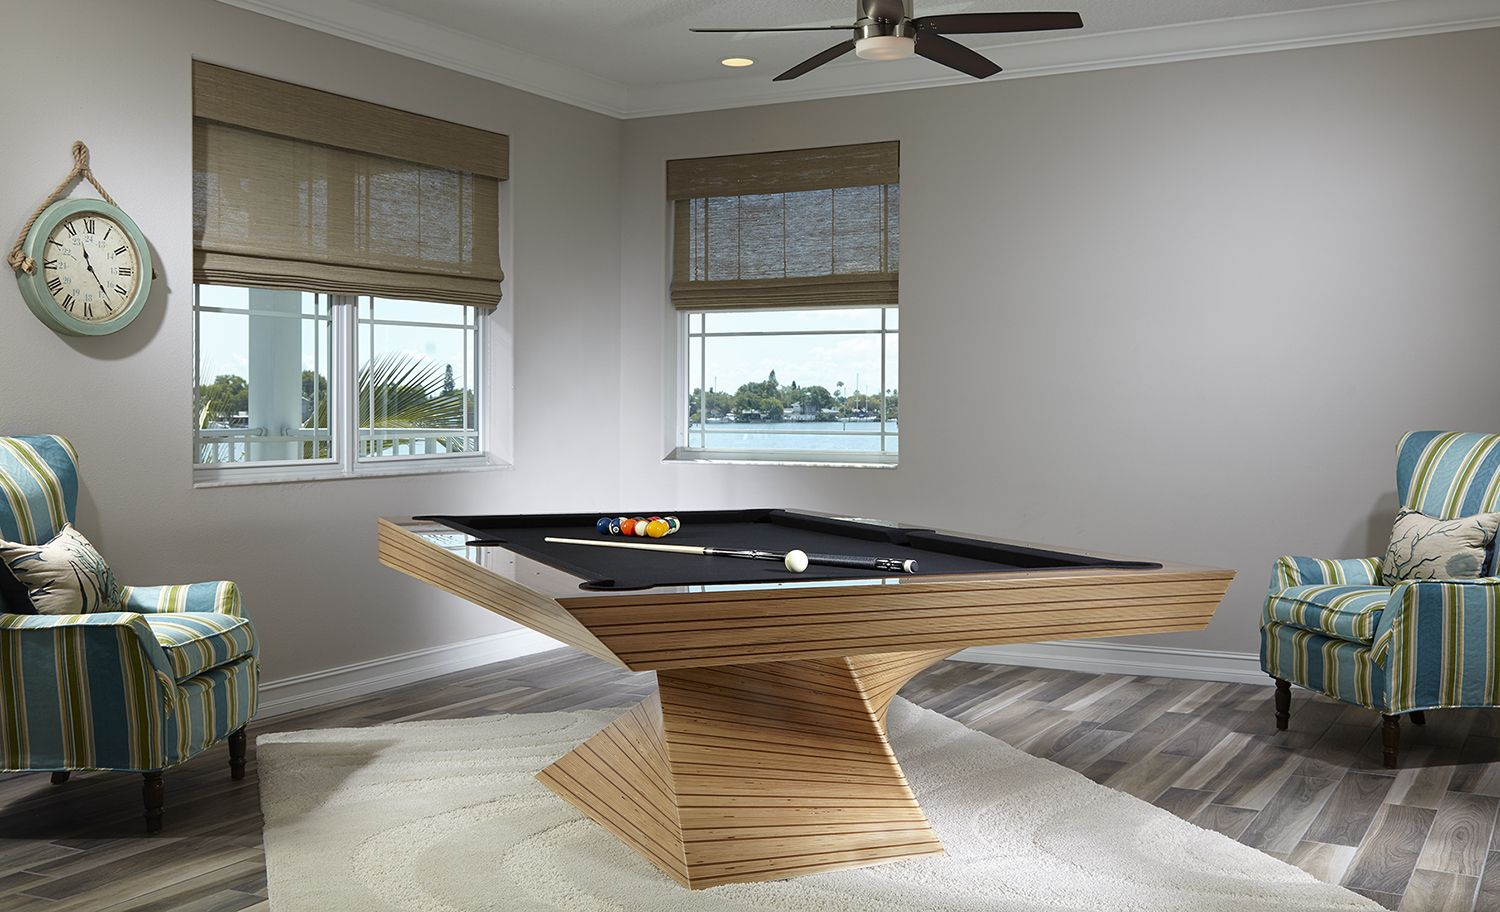 Game Room Ideas Modern pool table, Modern game tables